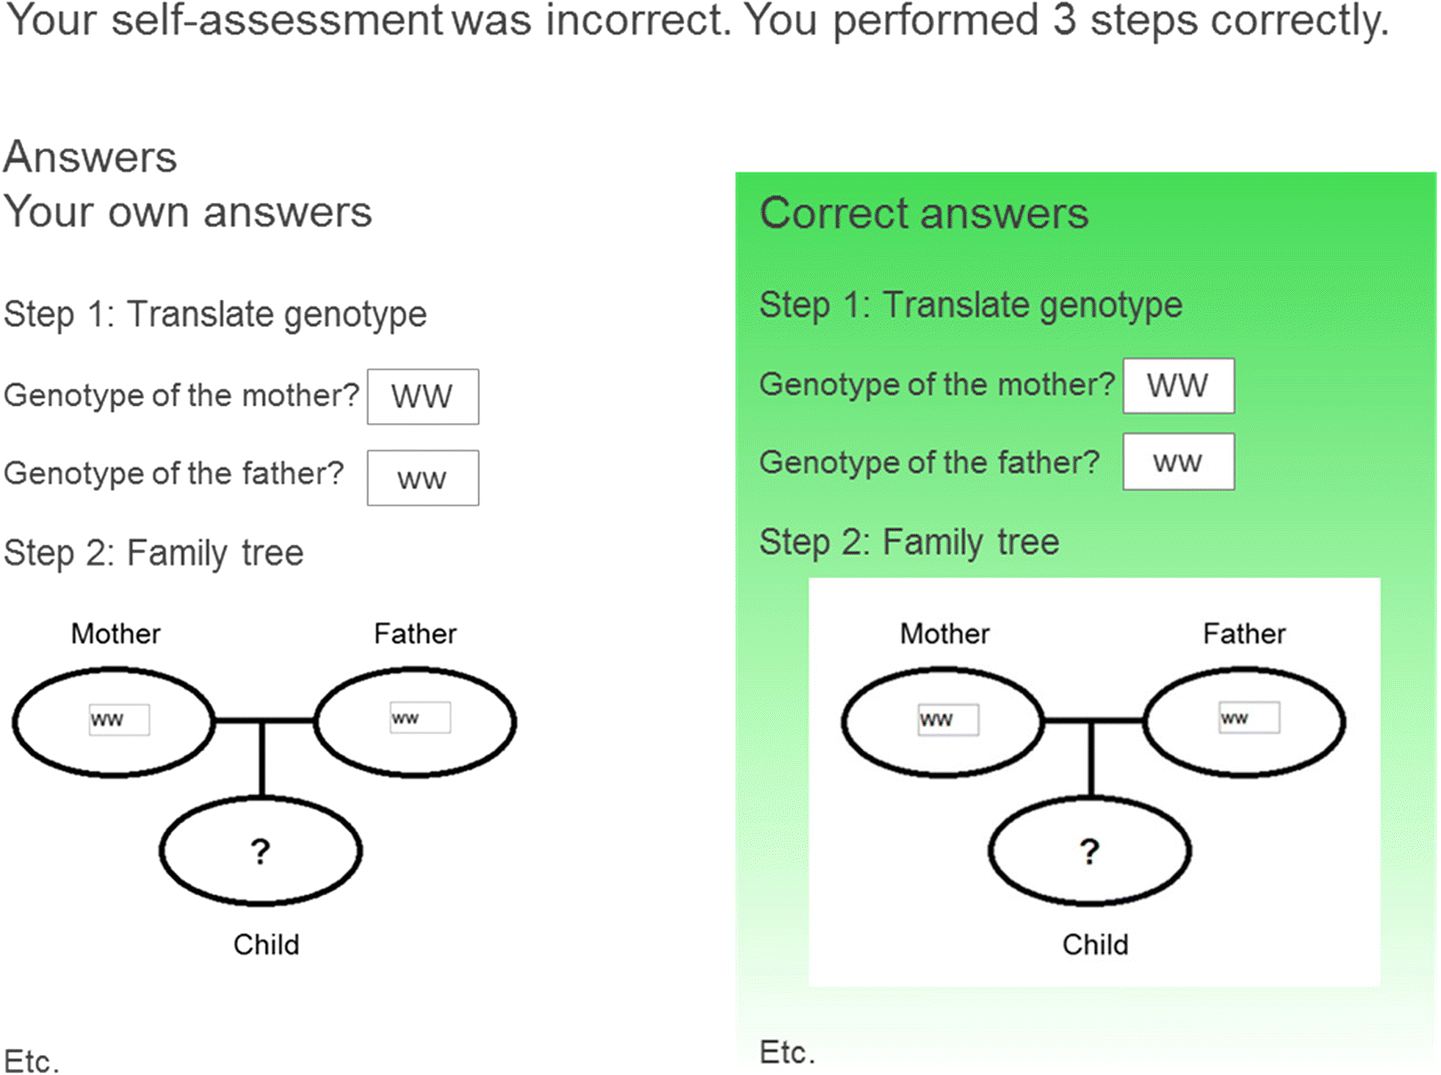 Effects of self-assessment feedback on self-assessment and